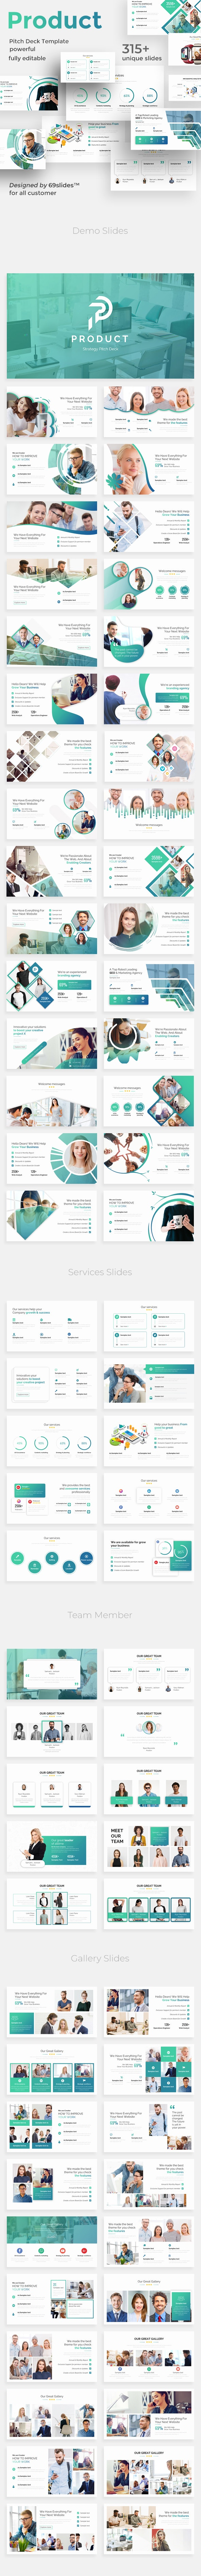 Product Strategy Pitch Deck Keynote Template - Business Keynote Templates